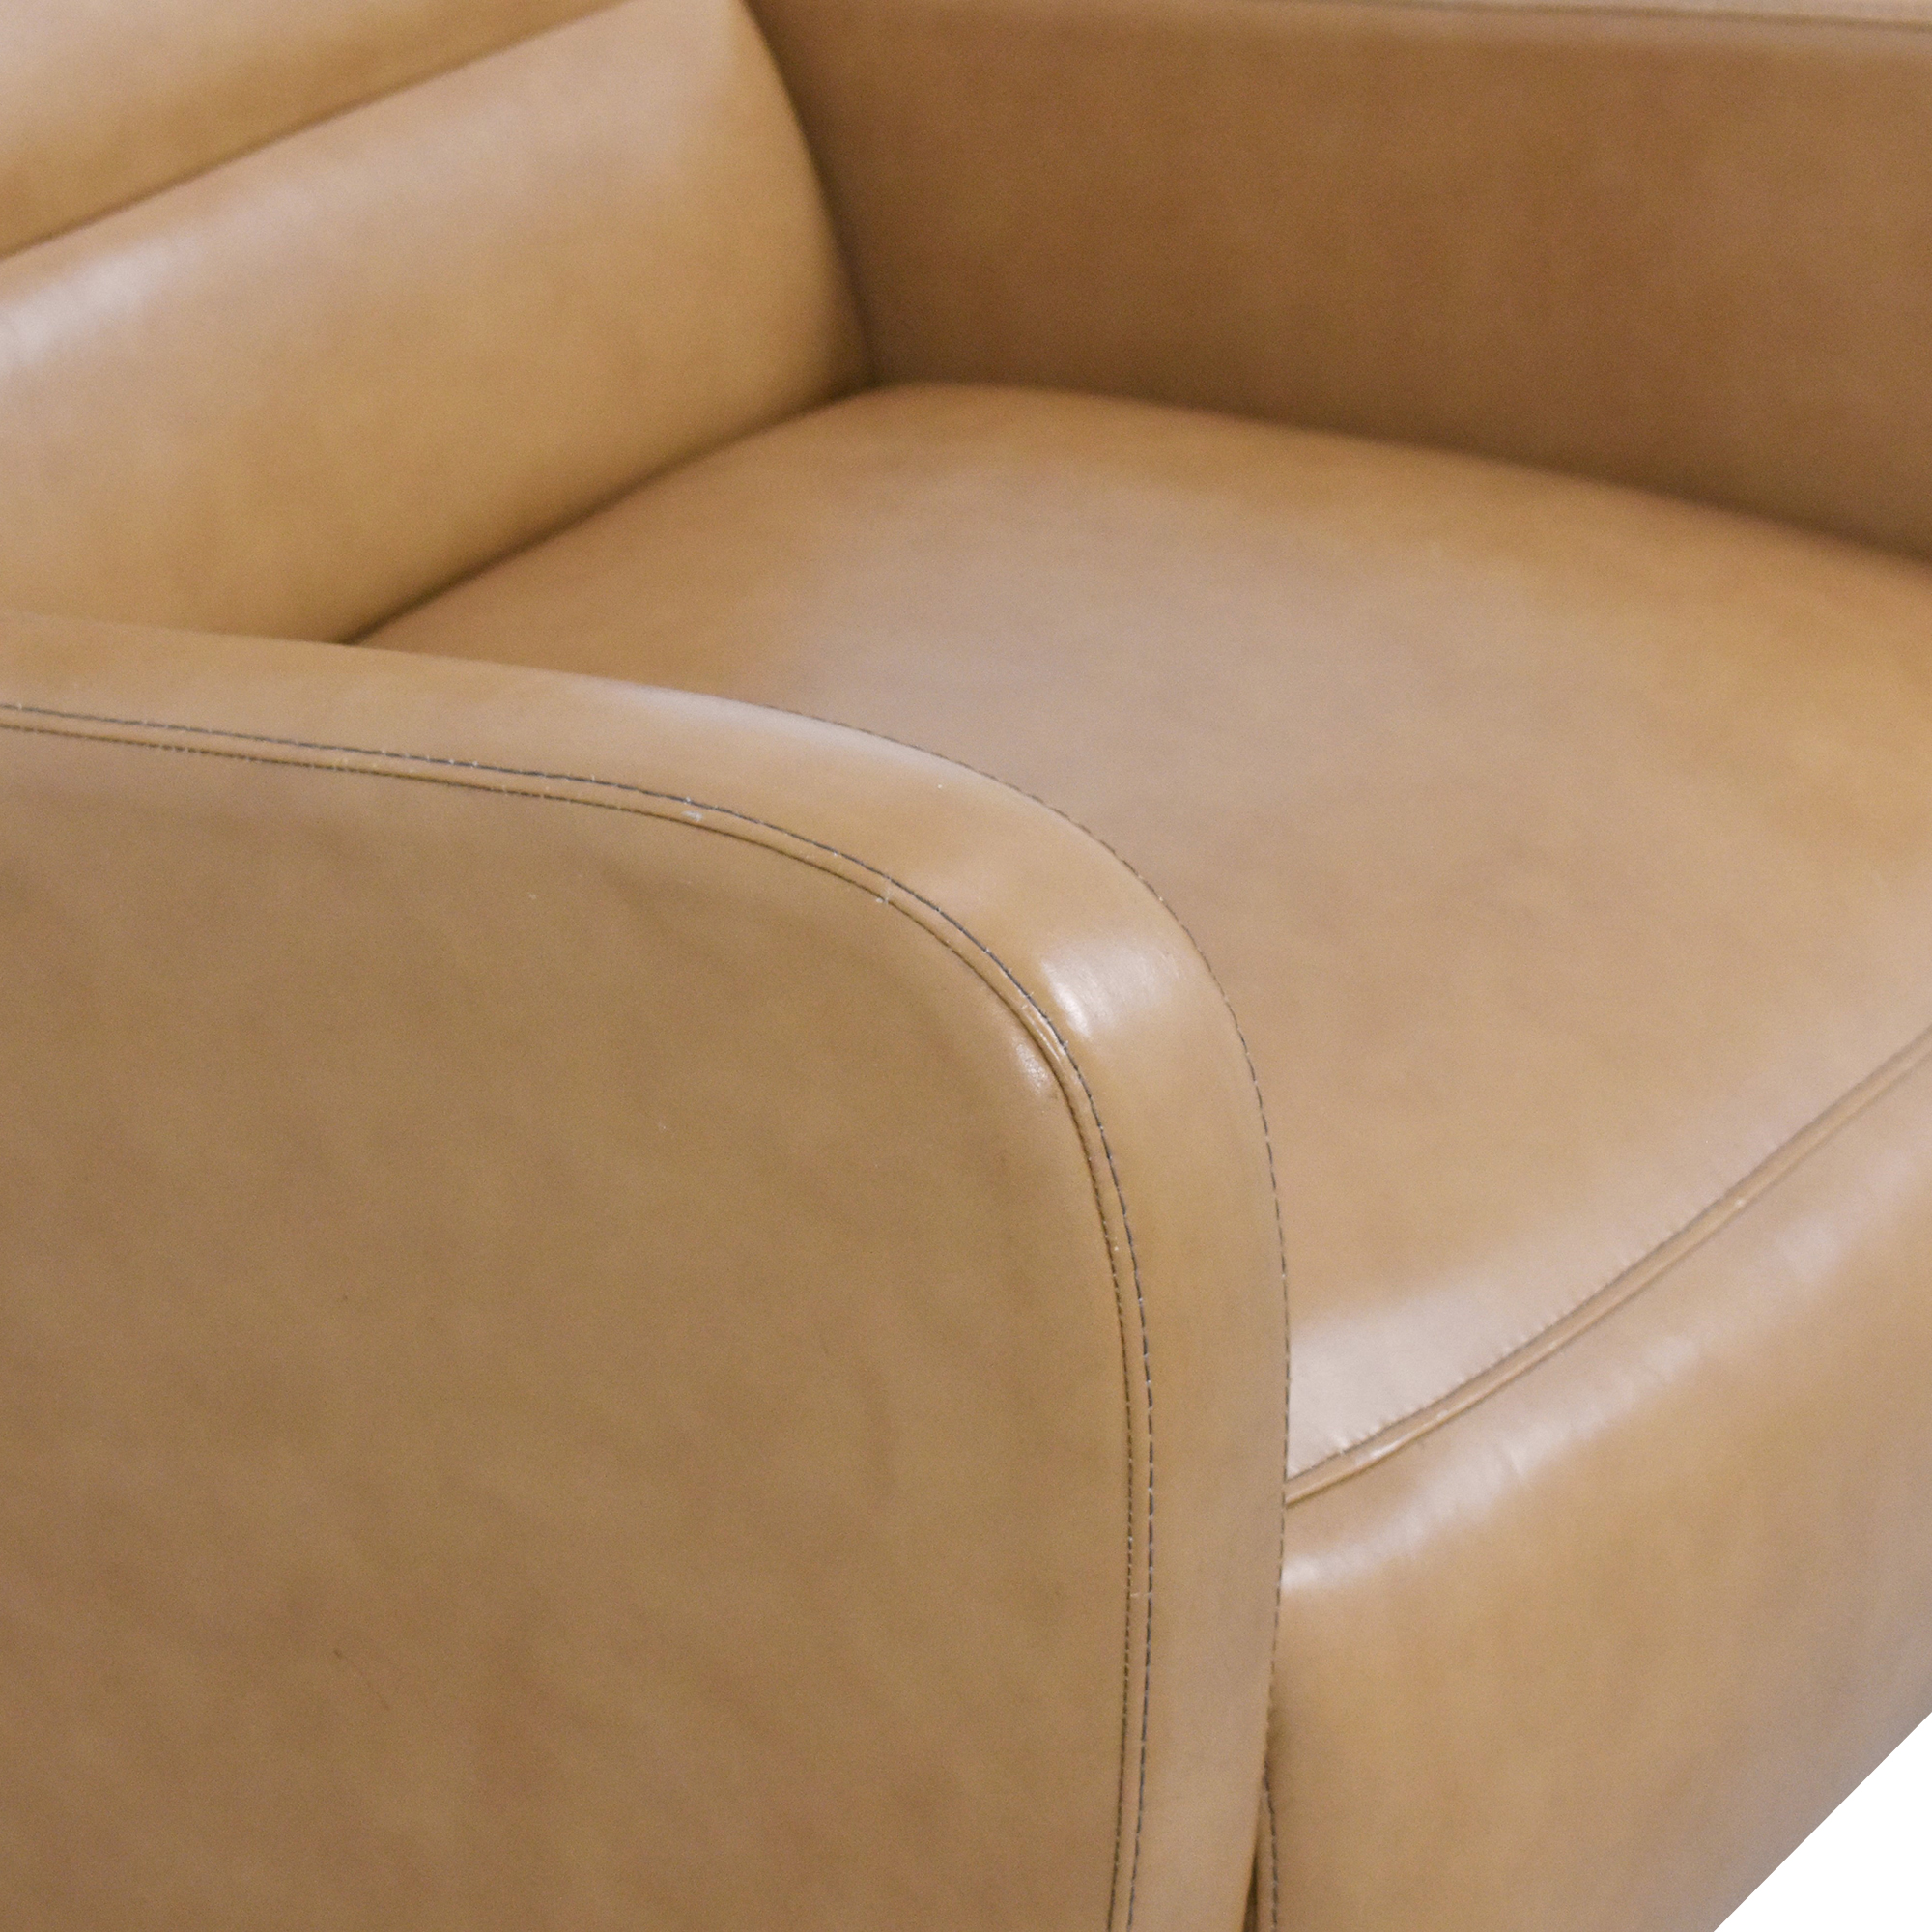 Elite Leather Company Elite Leather Company Aries Recliner used